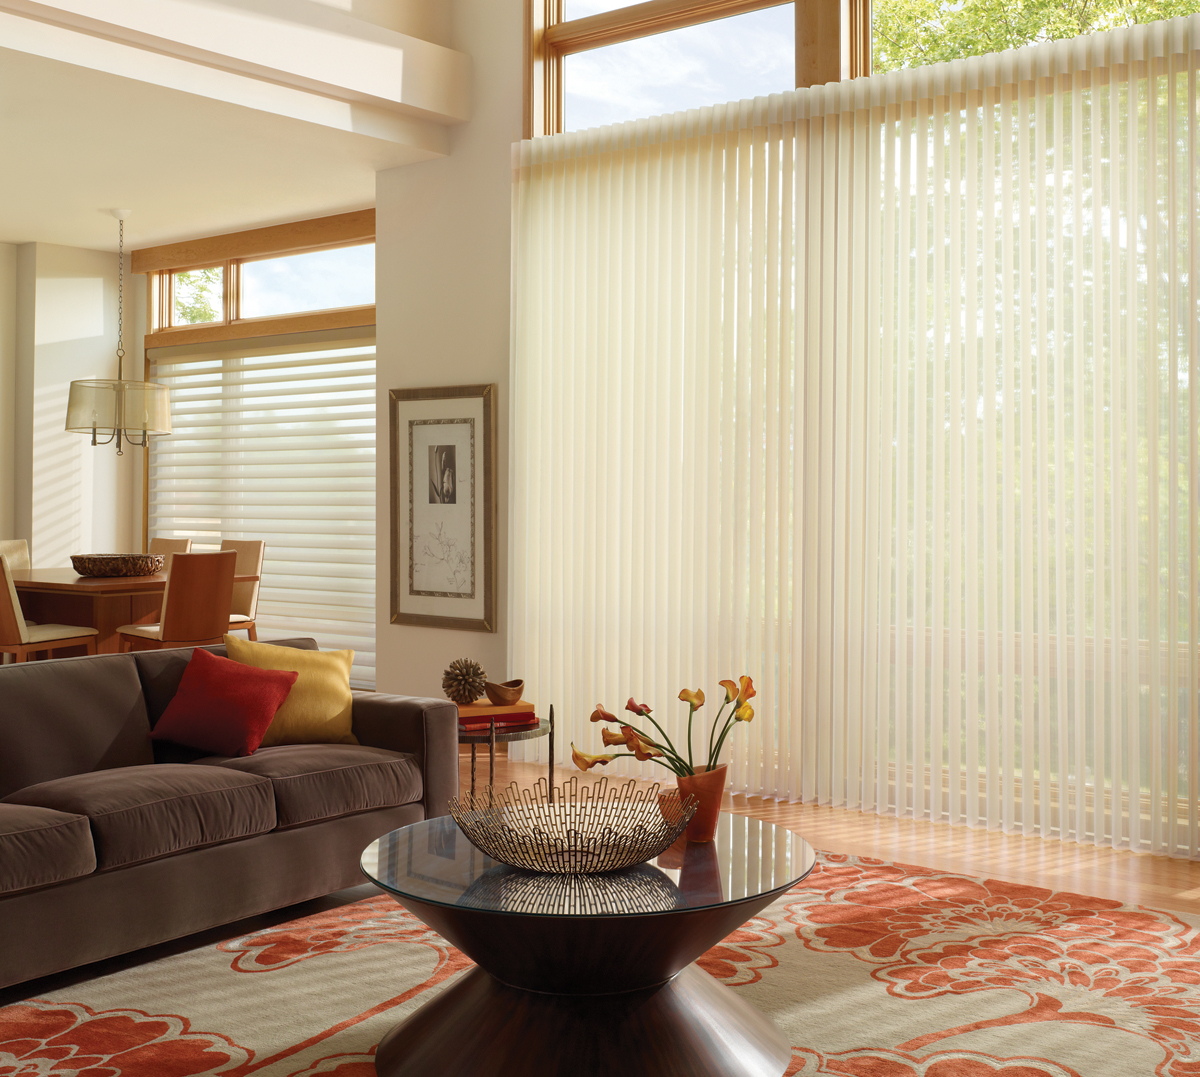 Privacy blinds for windows - Luminette Privacy Sheers And Modern Draperies